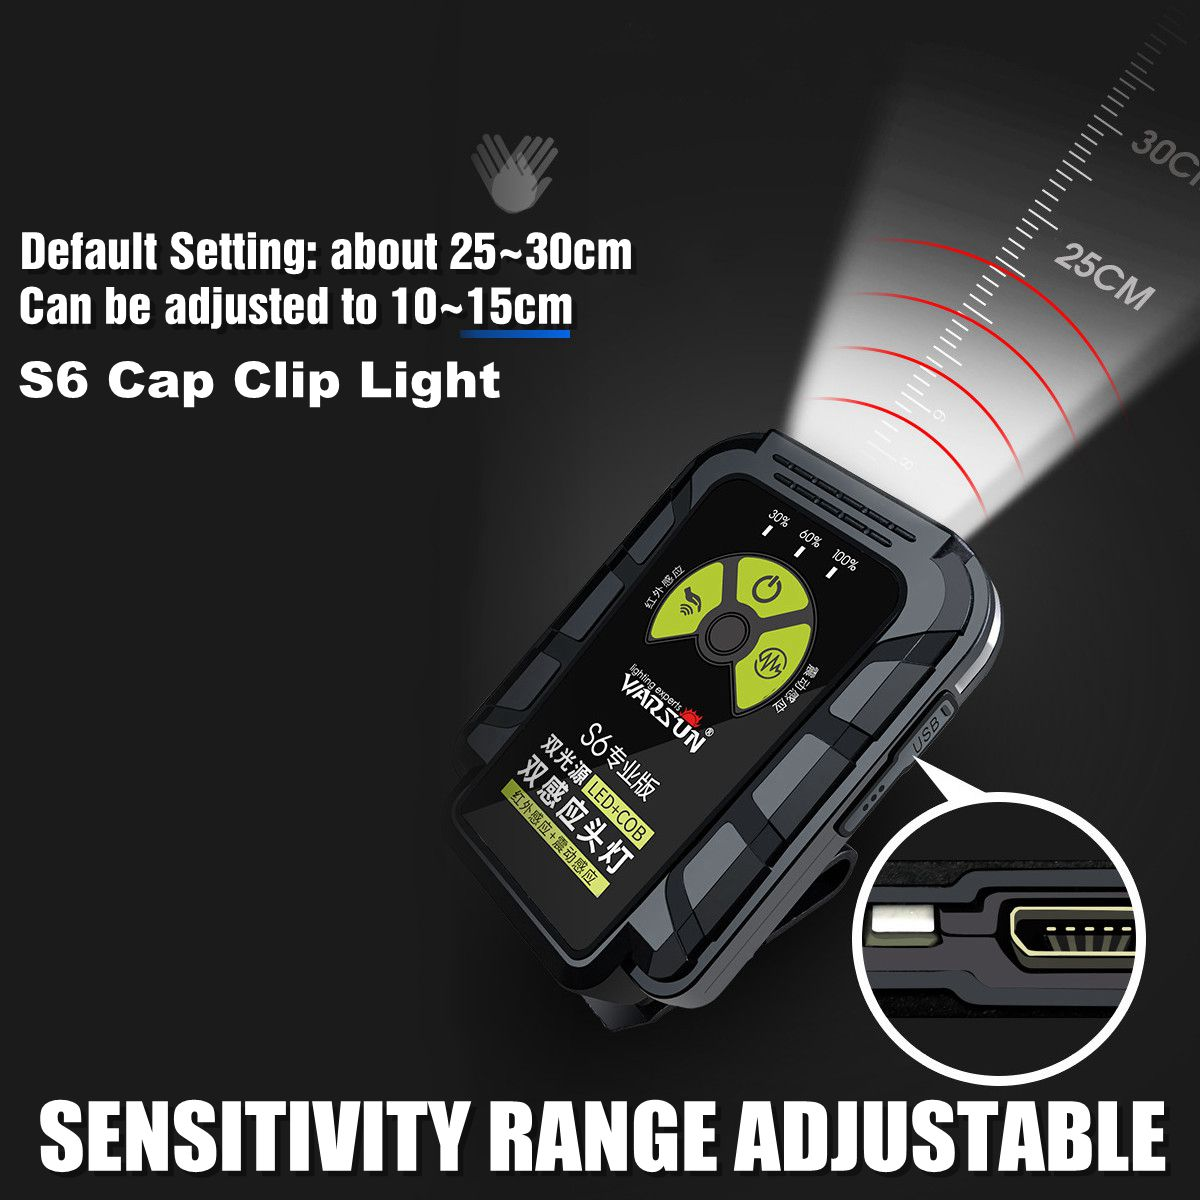 USB Rechargeable Headlight IR Motion Shock Sensor LED + COB Cap Clip-on Head Light IPX6 Fishing Cap Hat Lantern Flashlight With